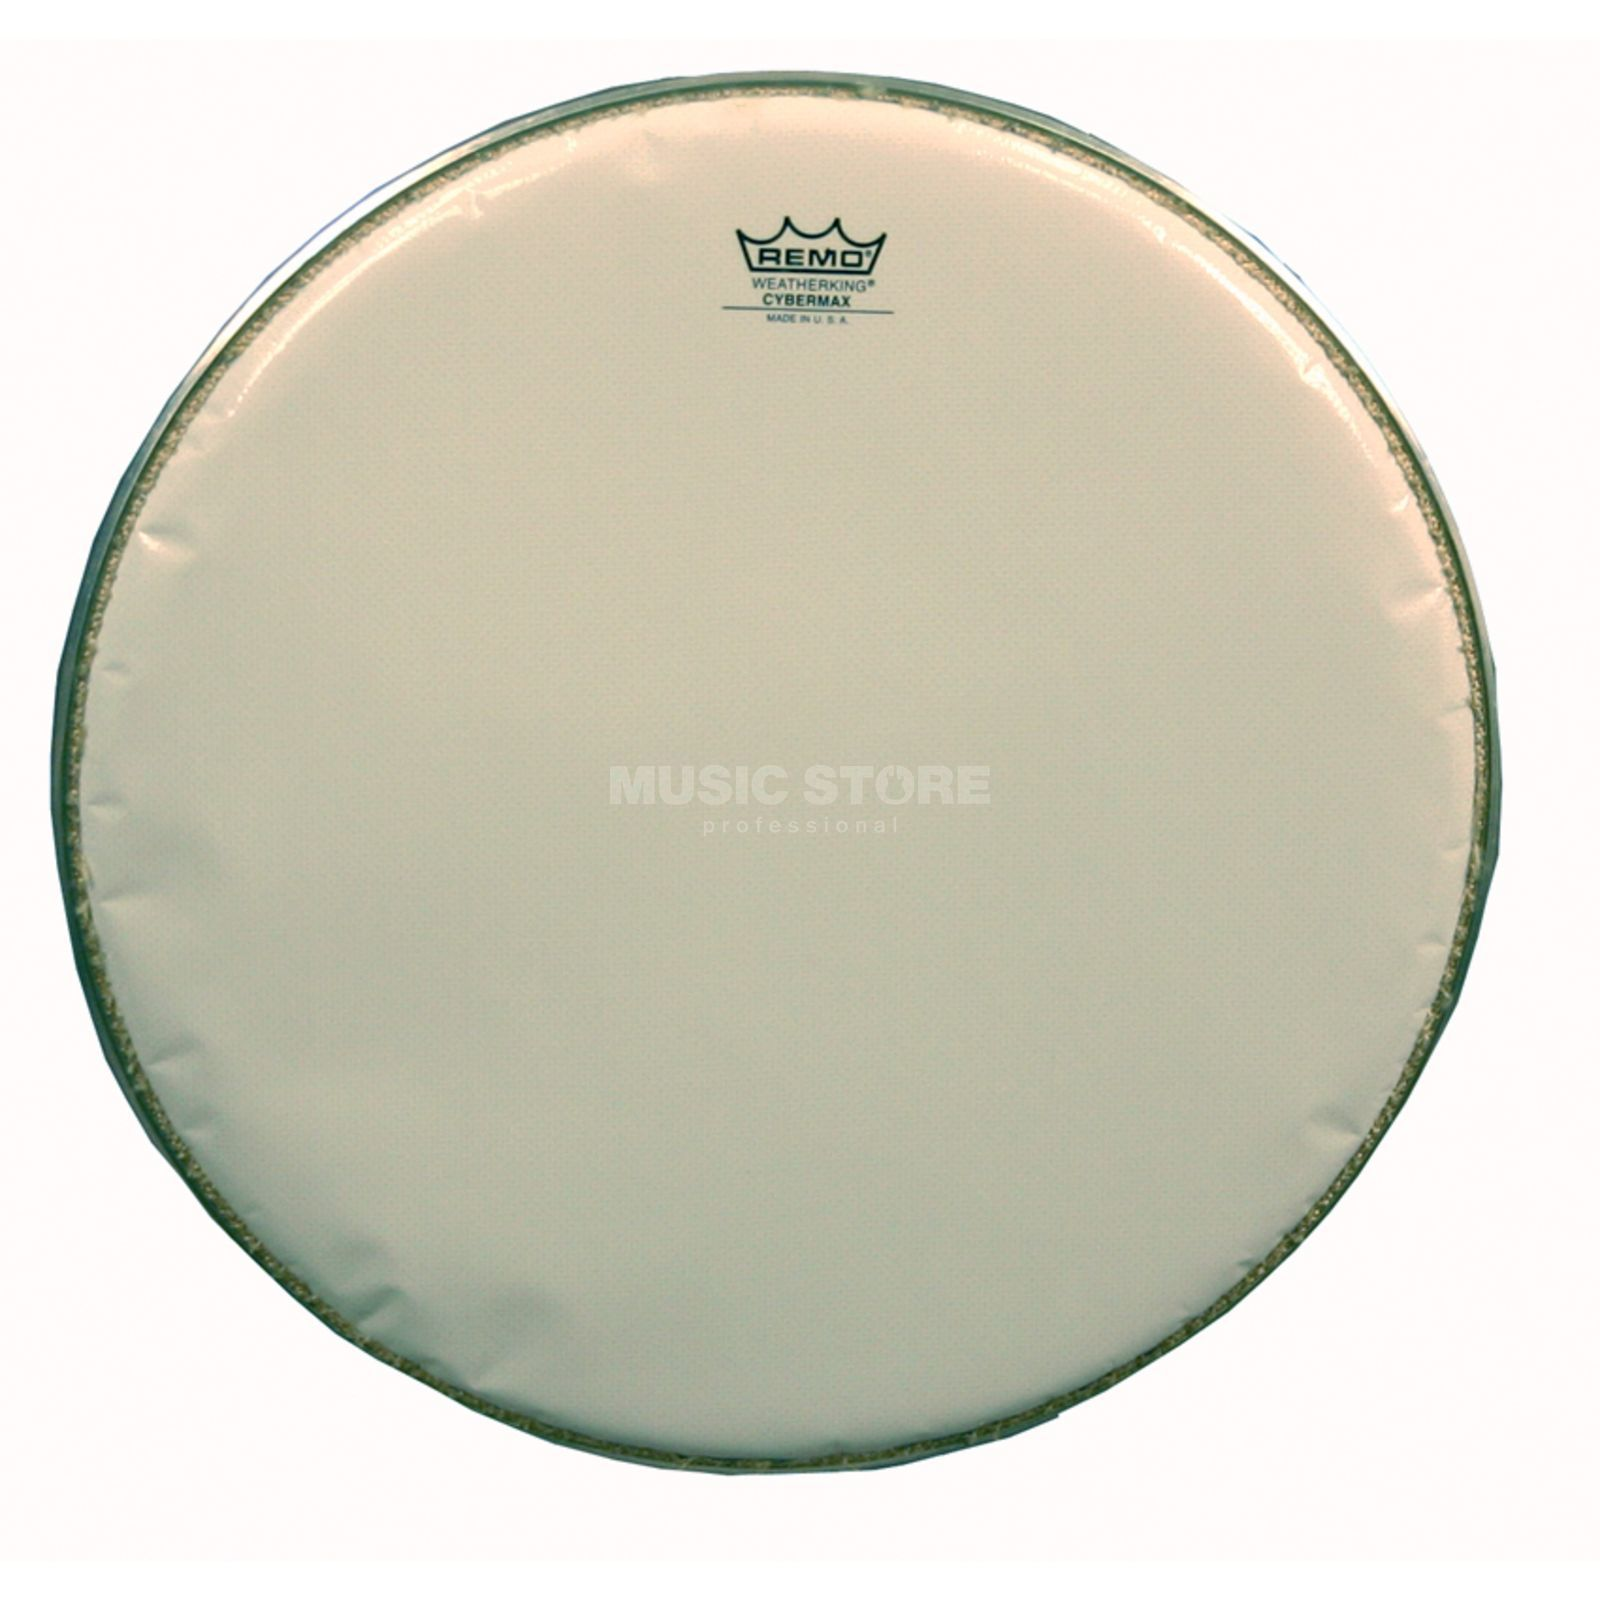 "Remo Cybermax 14"" - Smooth White - Marching Snare Batter Produktbillede"